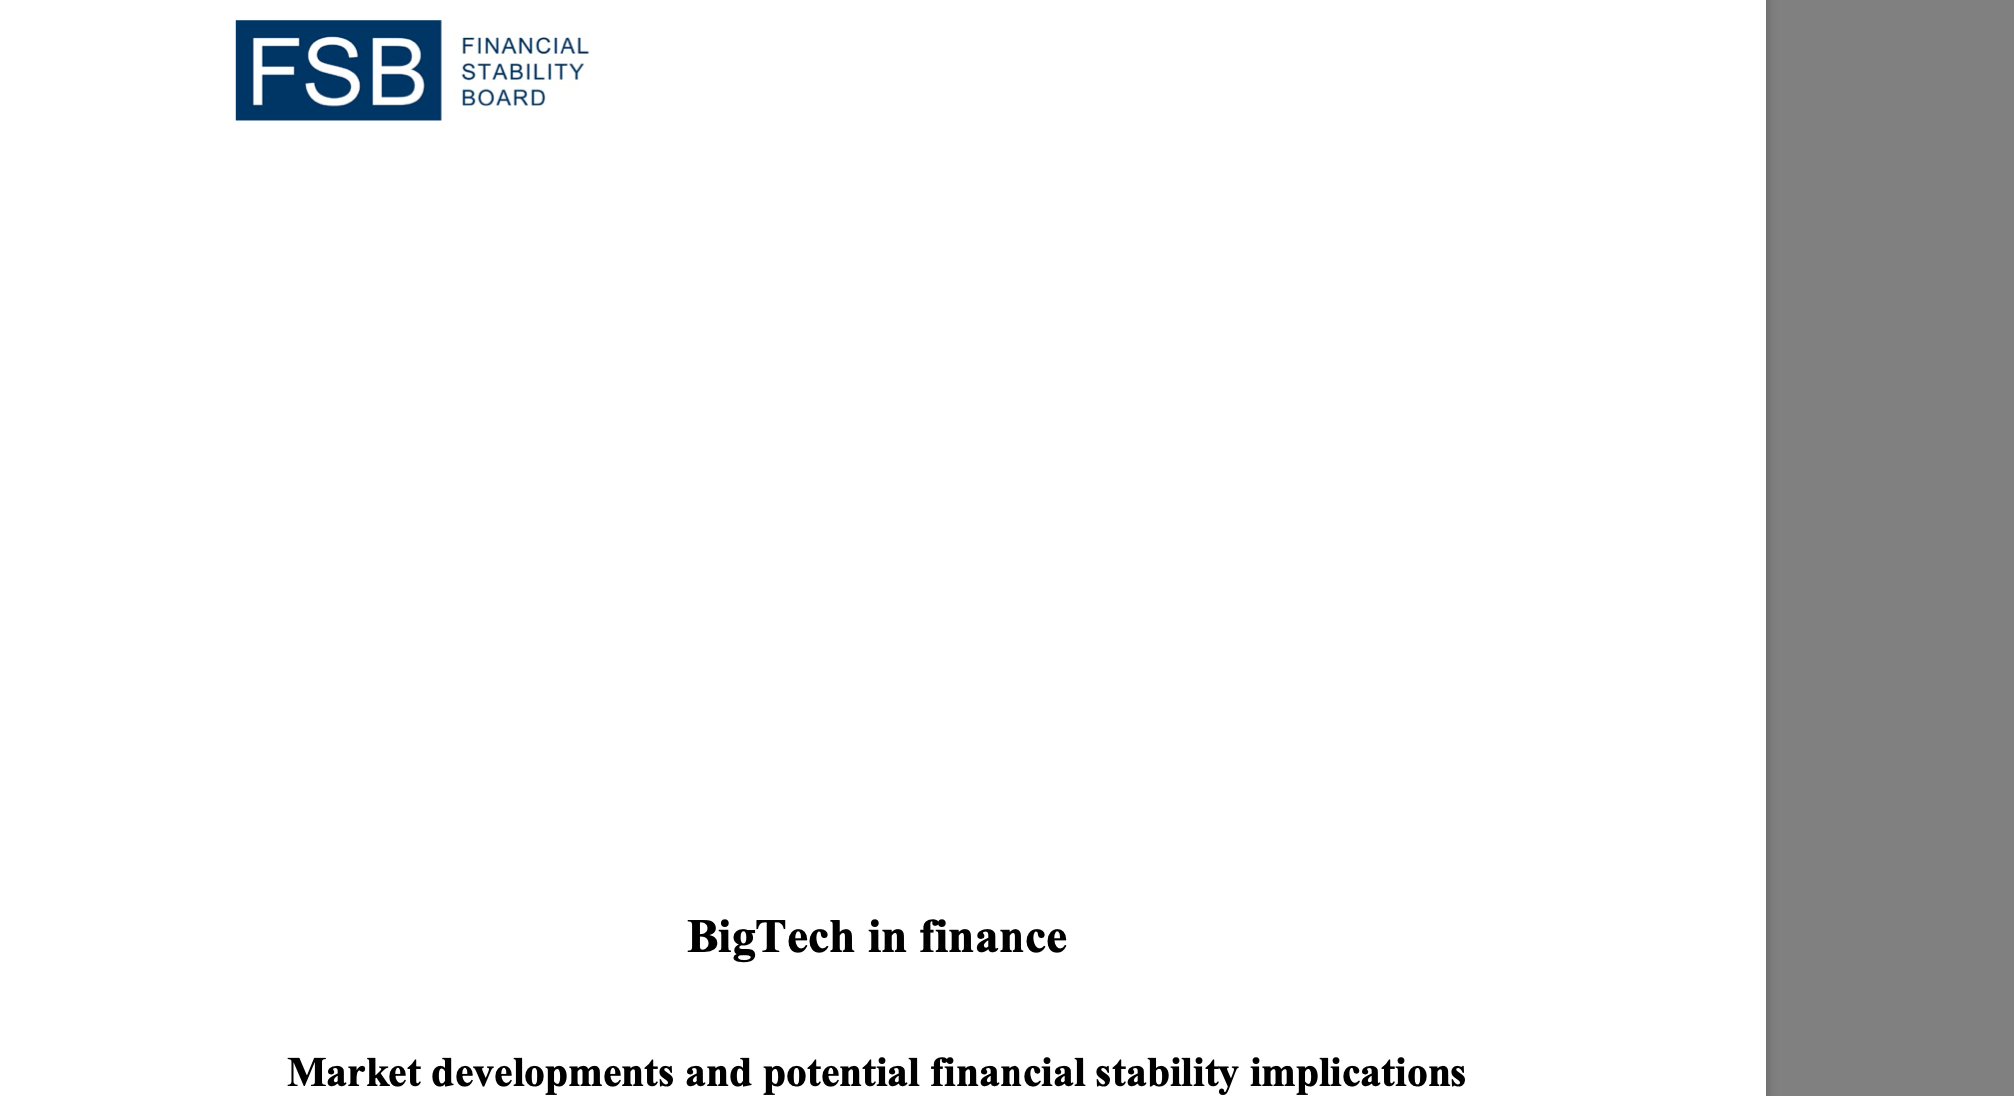 "BigTech nie jest (na razie) zagrożeniem dla rozwiniętych rynków. Tak twierdzi Financial Stability Board w swoim raporcie ""BigTech in finance. Market developments and potential financial stability implications"""